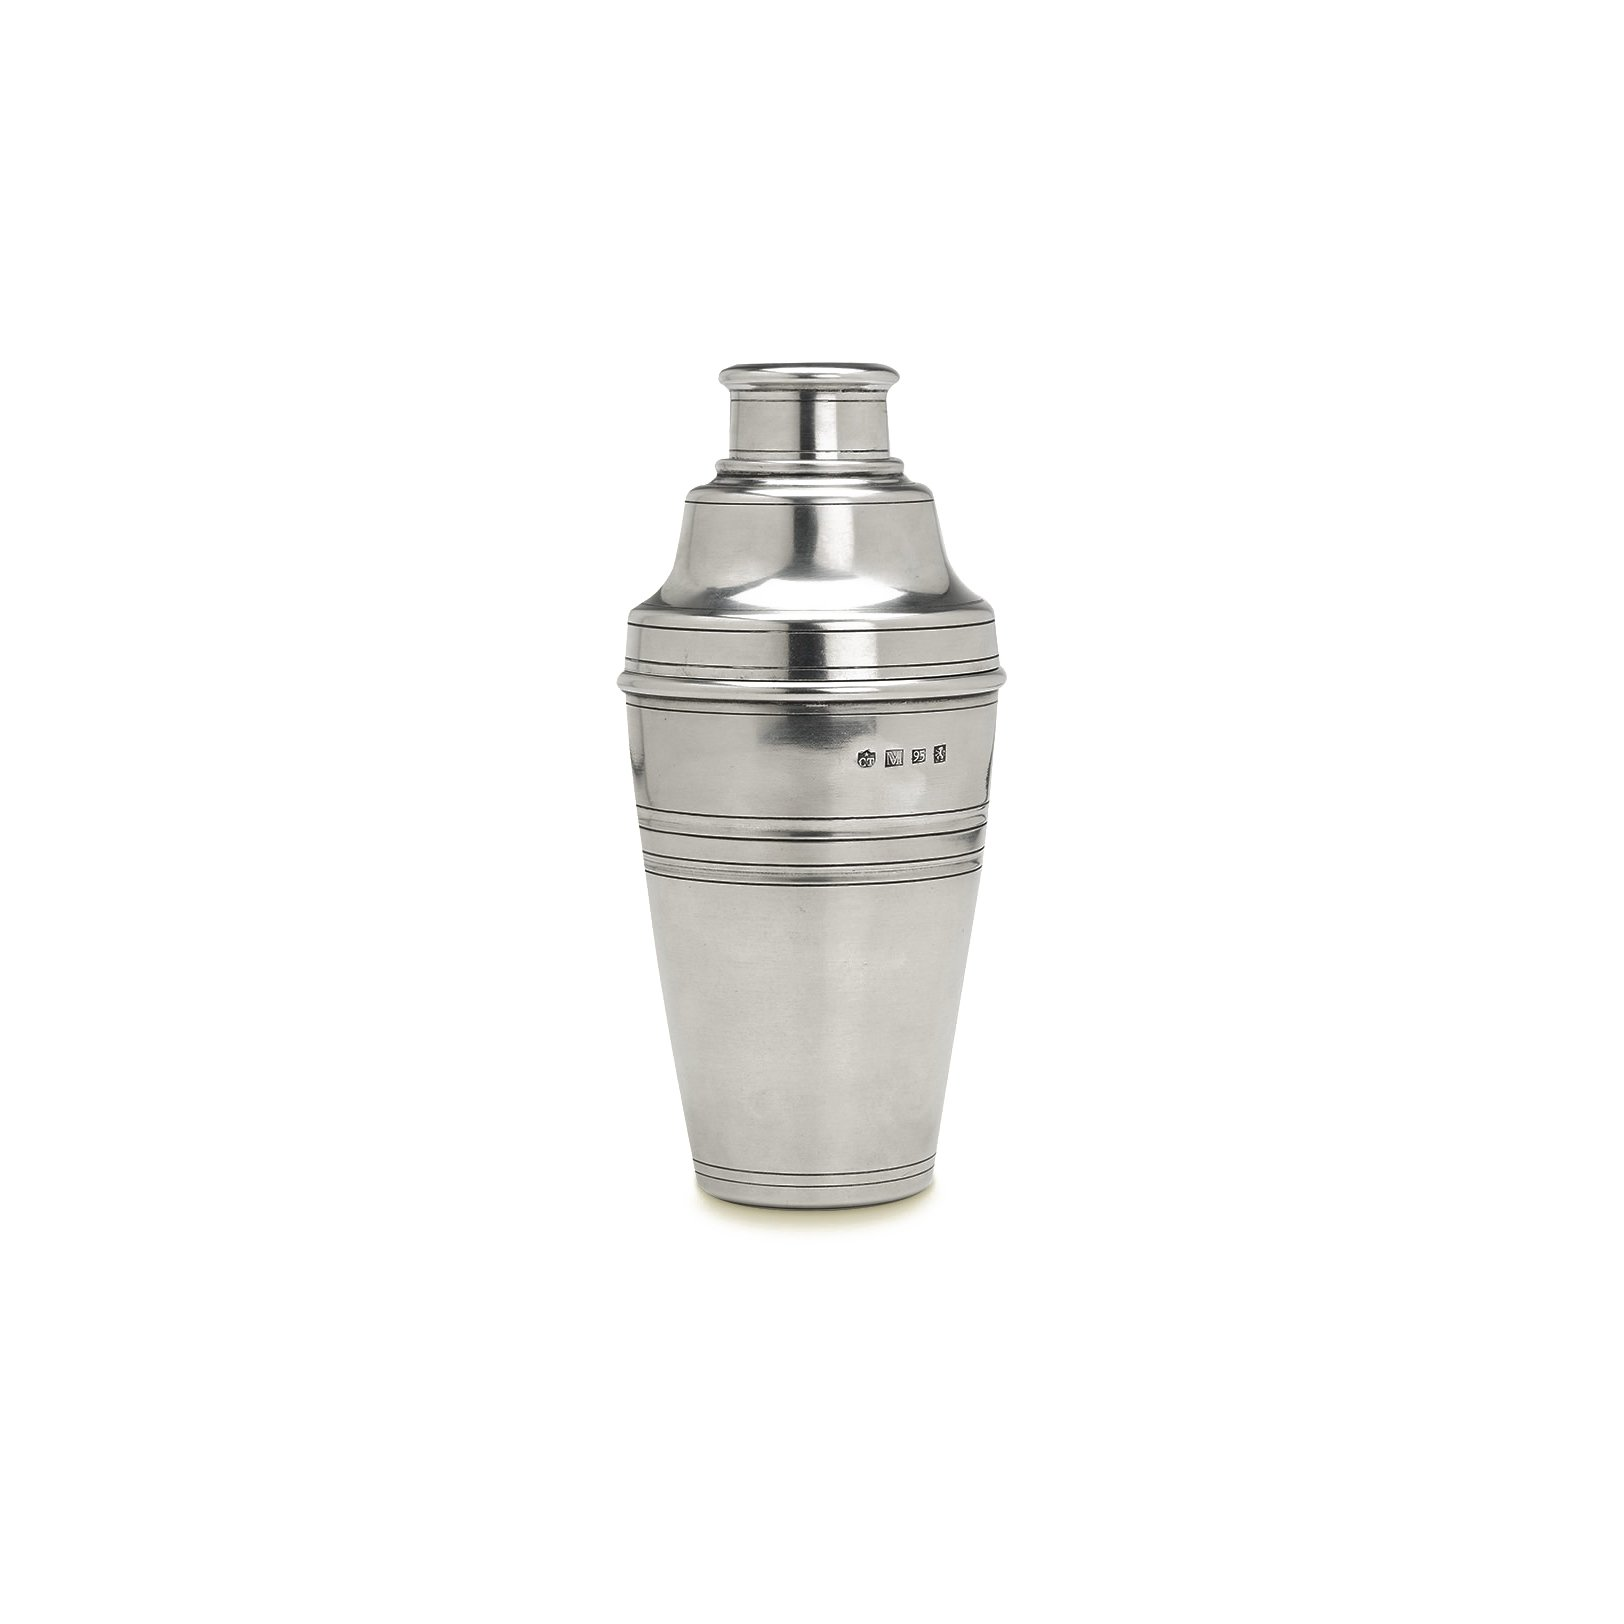 Classic Cobbler Cocktail Shaker by Match Pewter